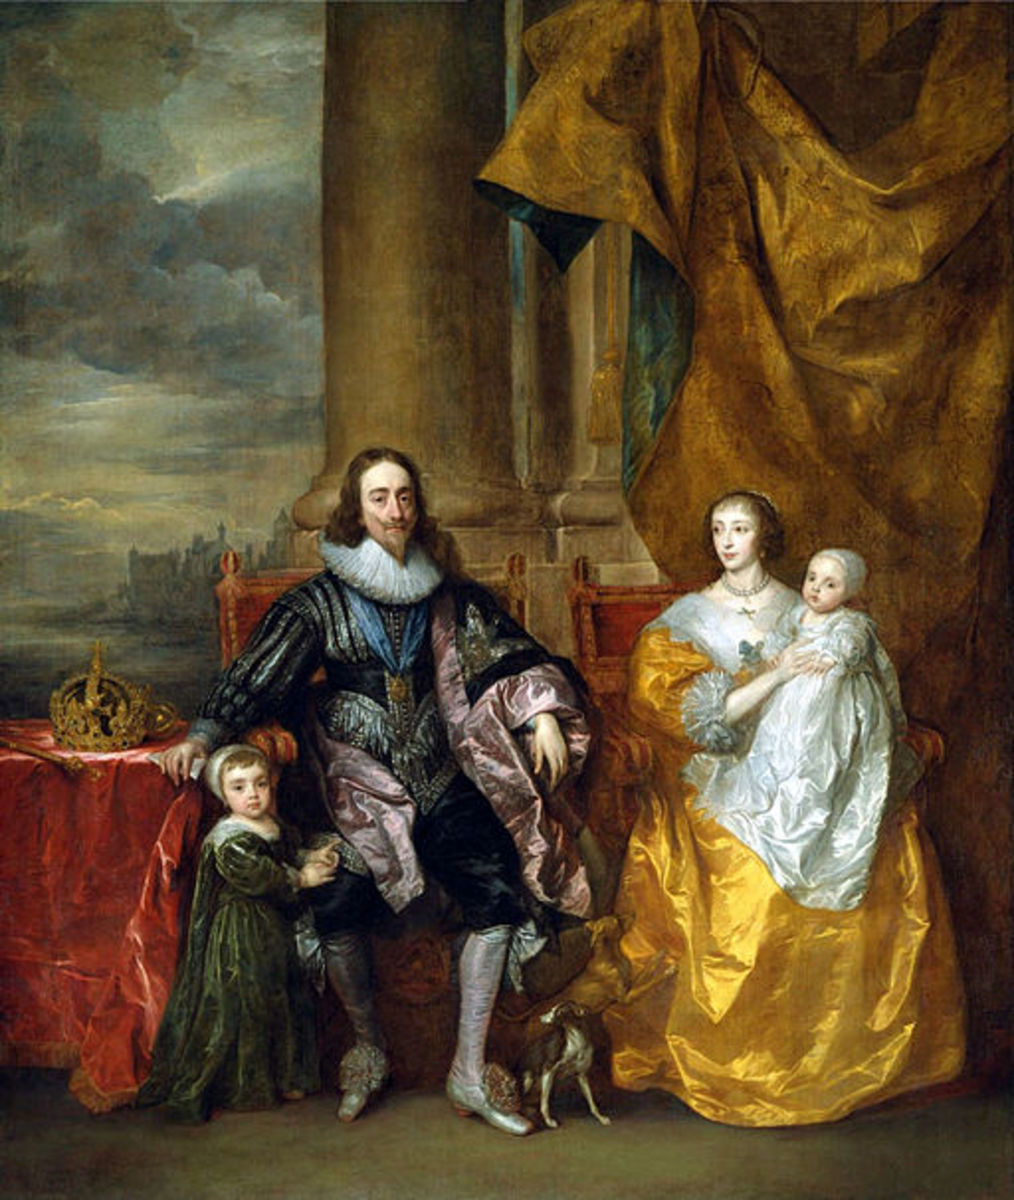 The Birds Have Flown: How King Charles I Took England Into Civil War